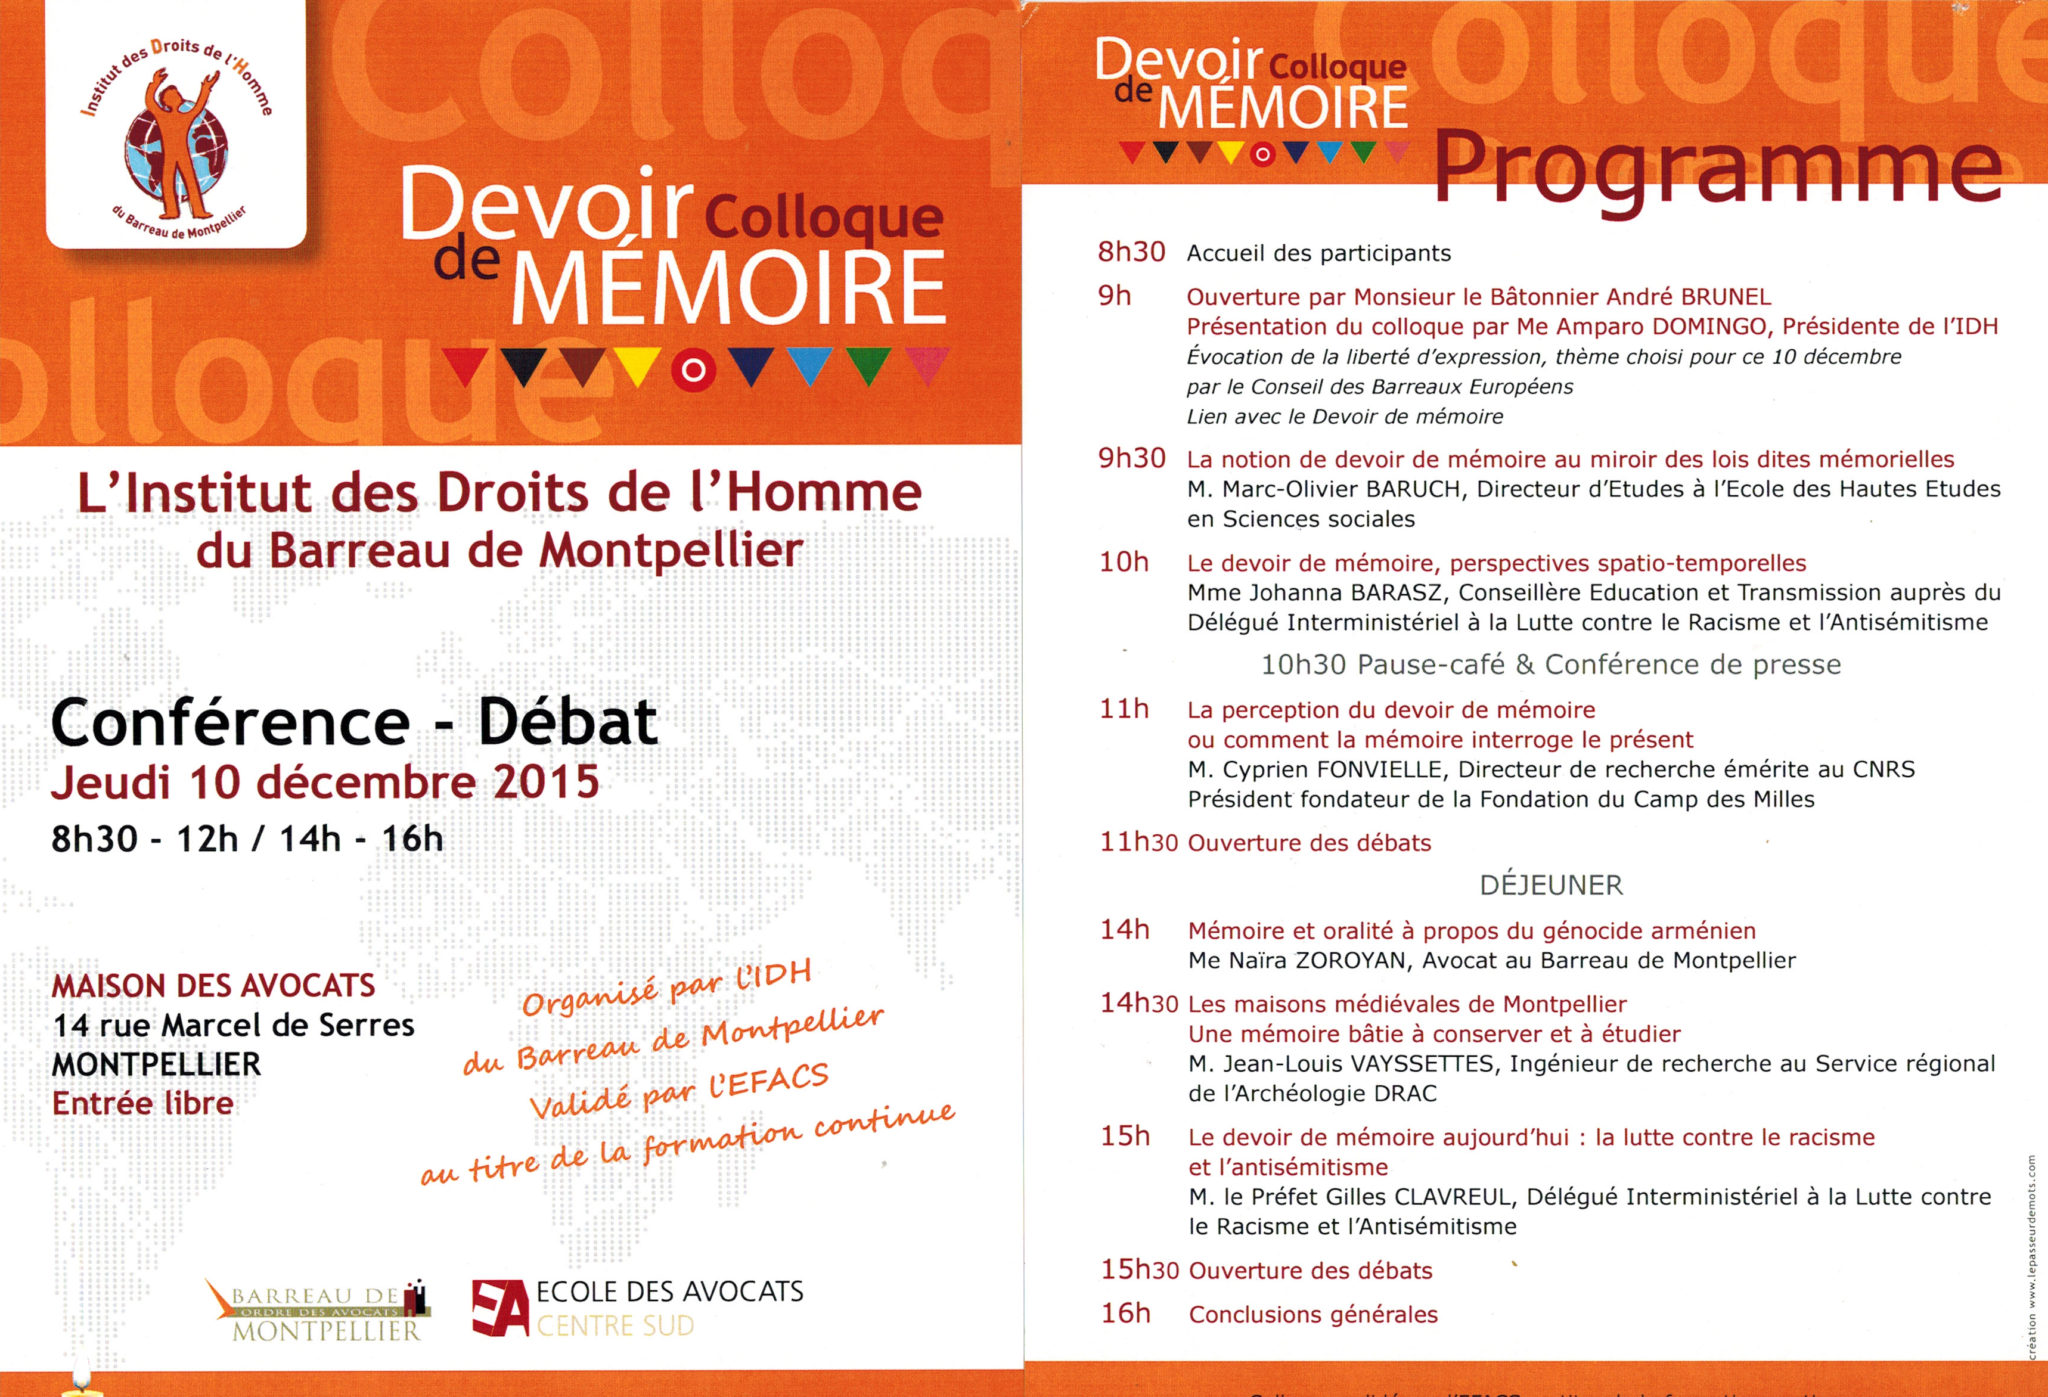 Colloque devoir de memoire